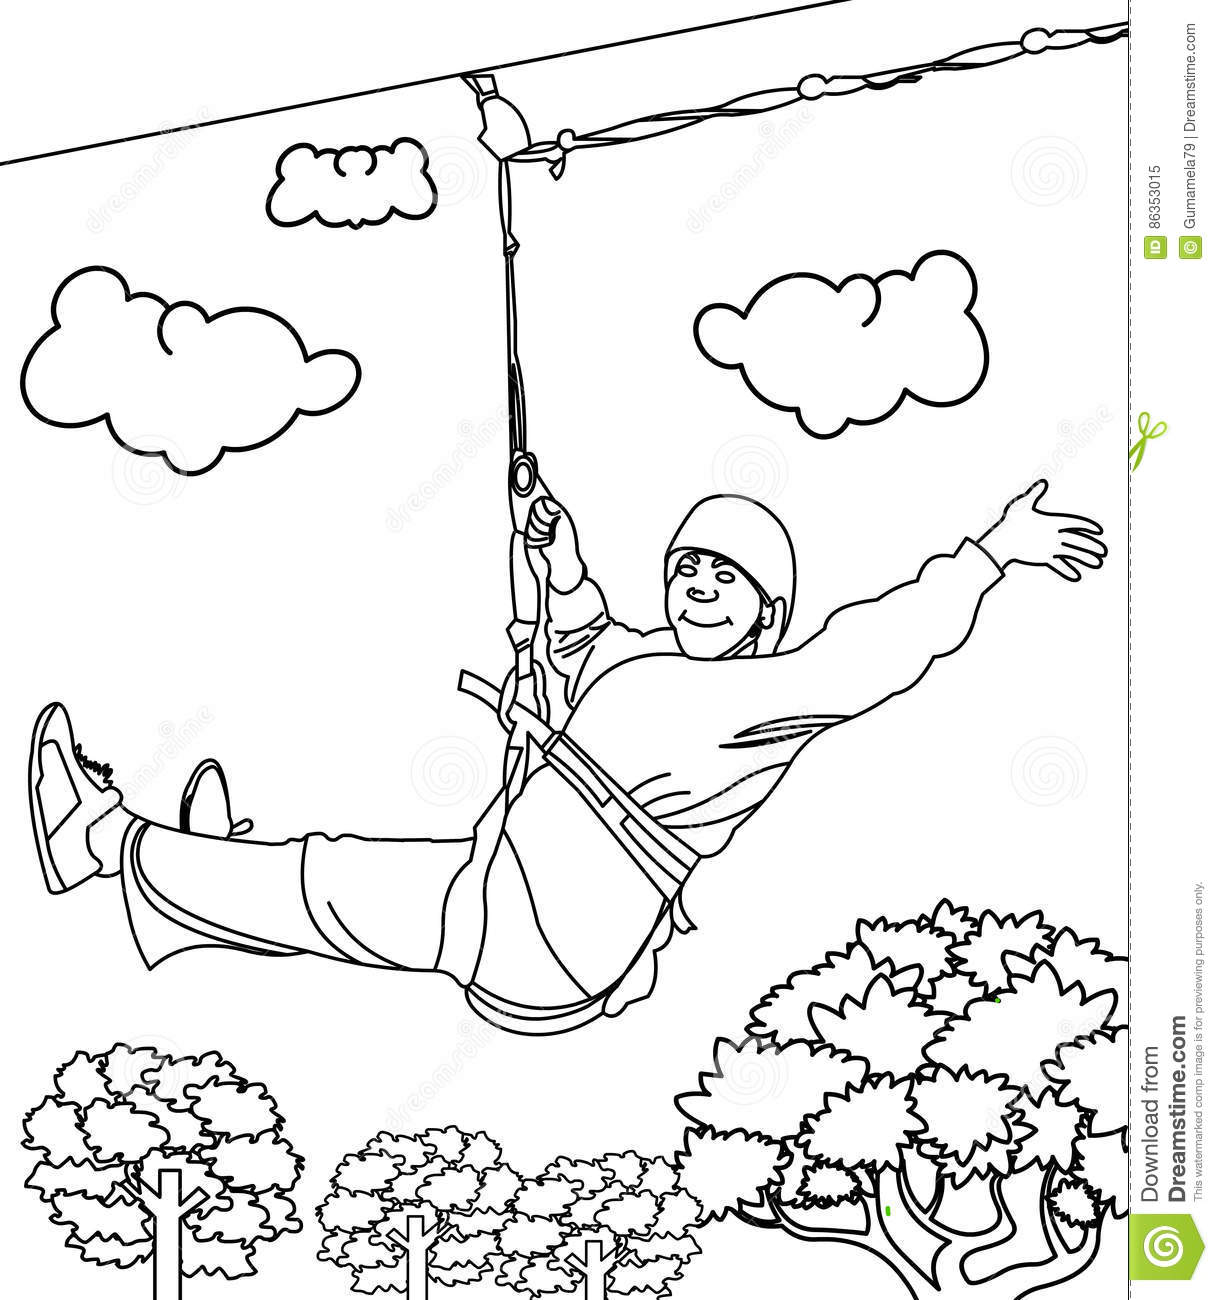 Line Art Zip : Zipline coloring page stock illustration image